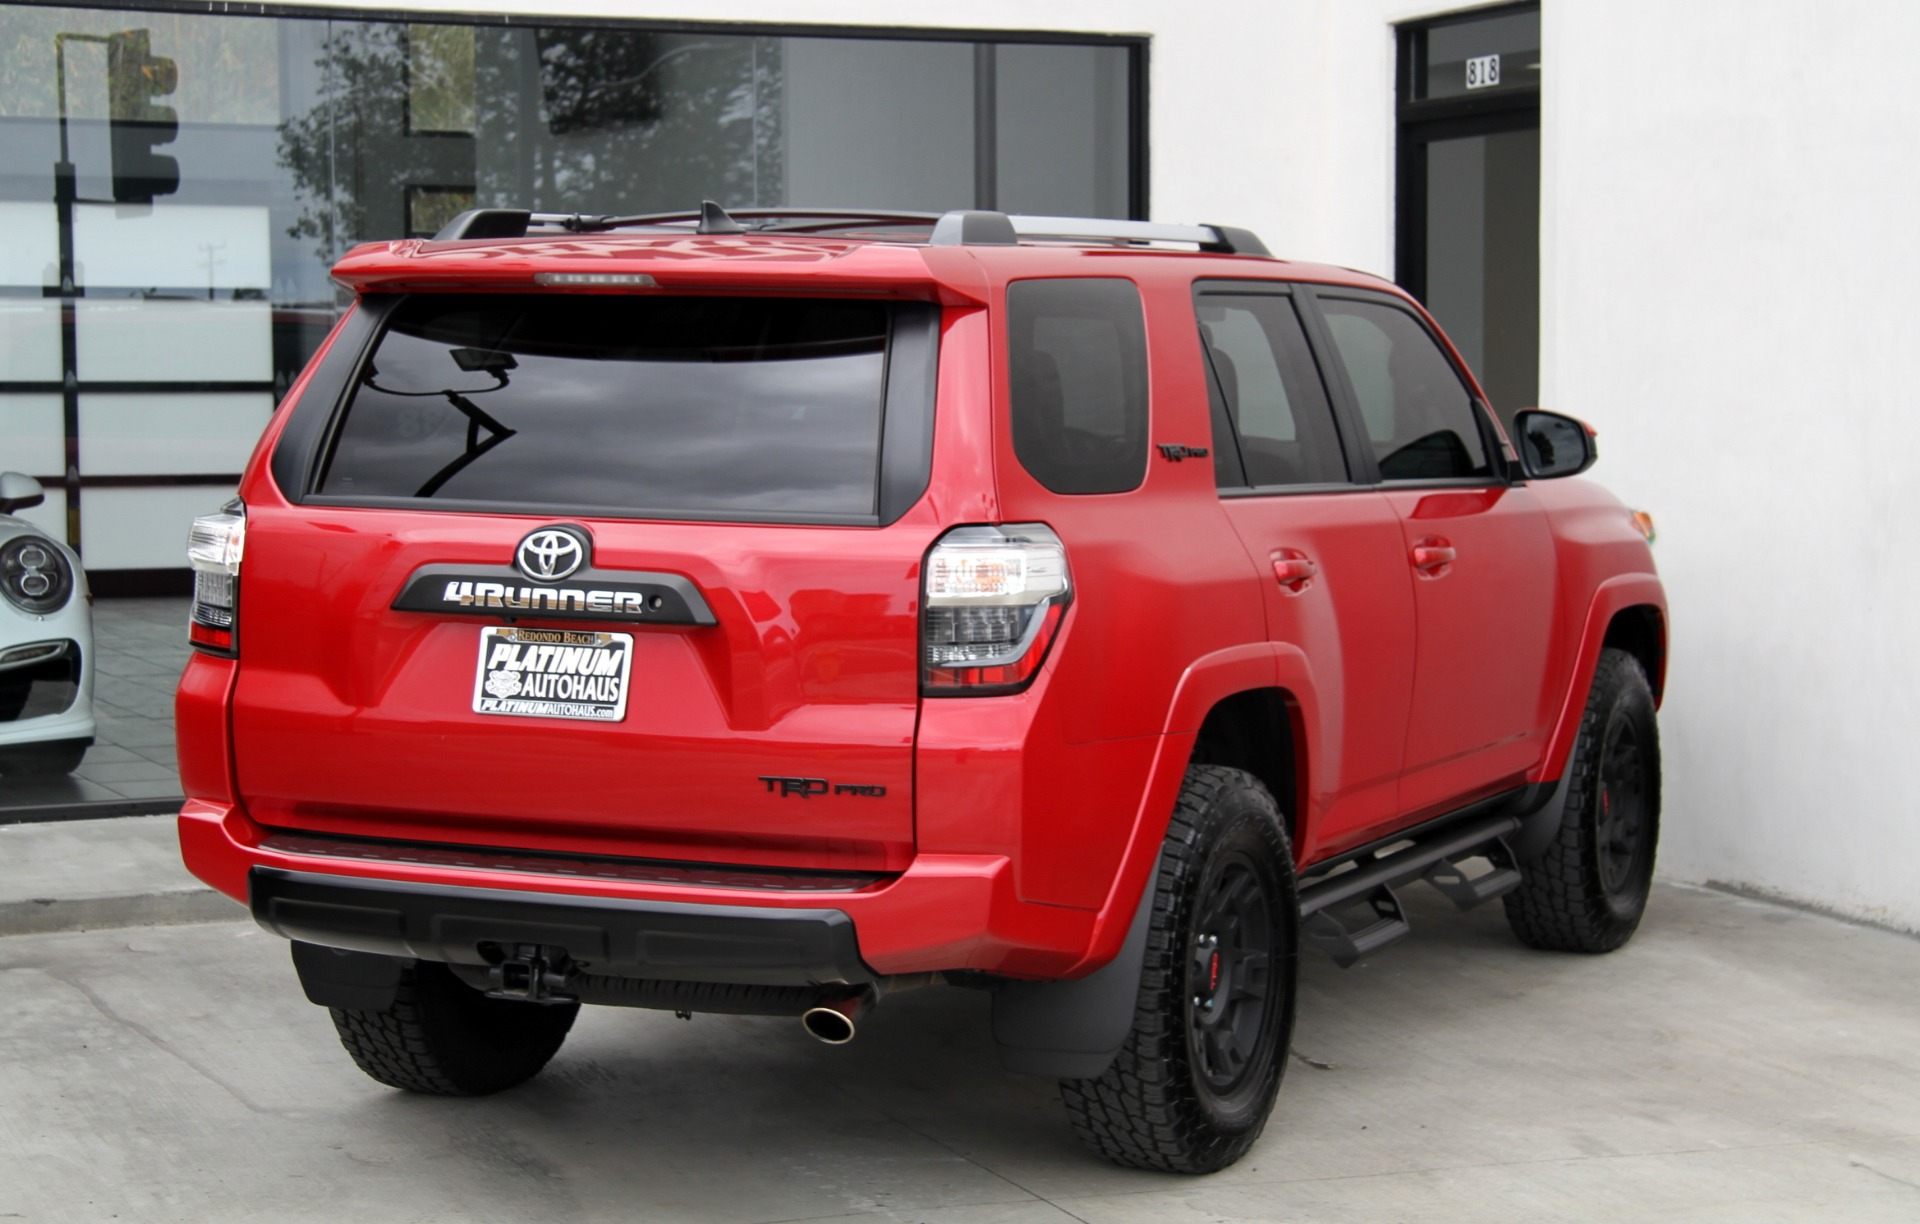 Used Suv For Sale Near Me >> 2017 Toyota 4Runner TRD Pro Stock # 6210 for sale near ...